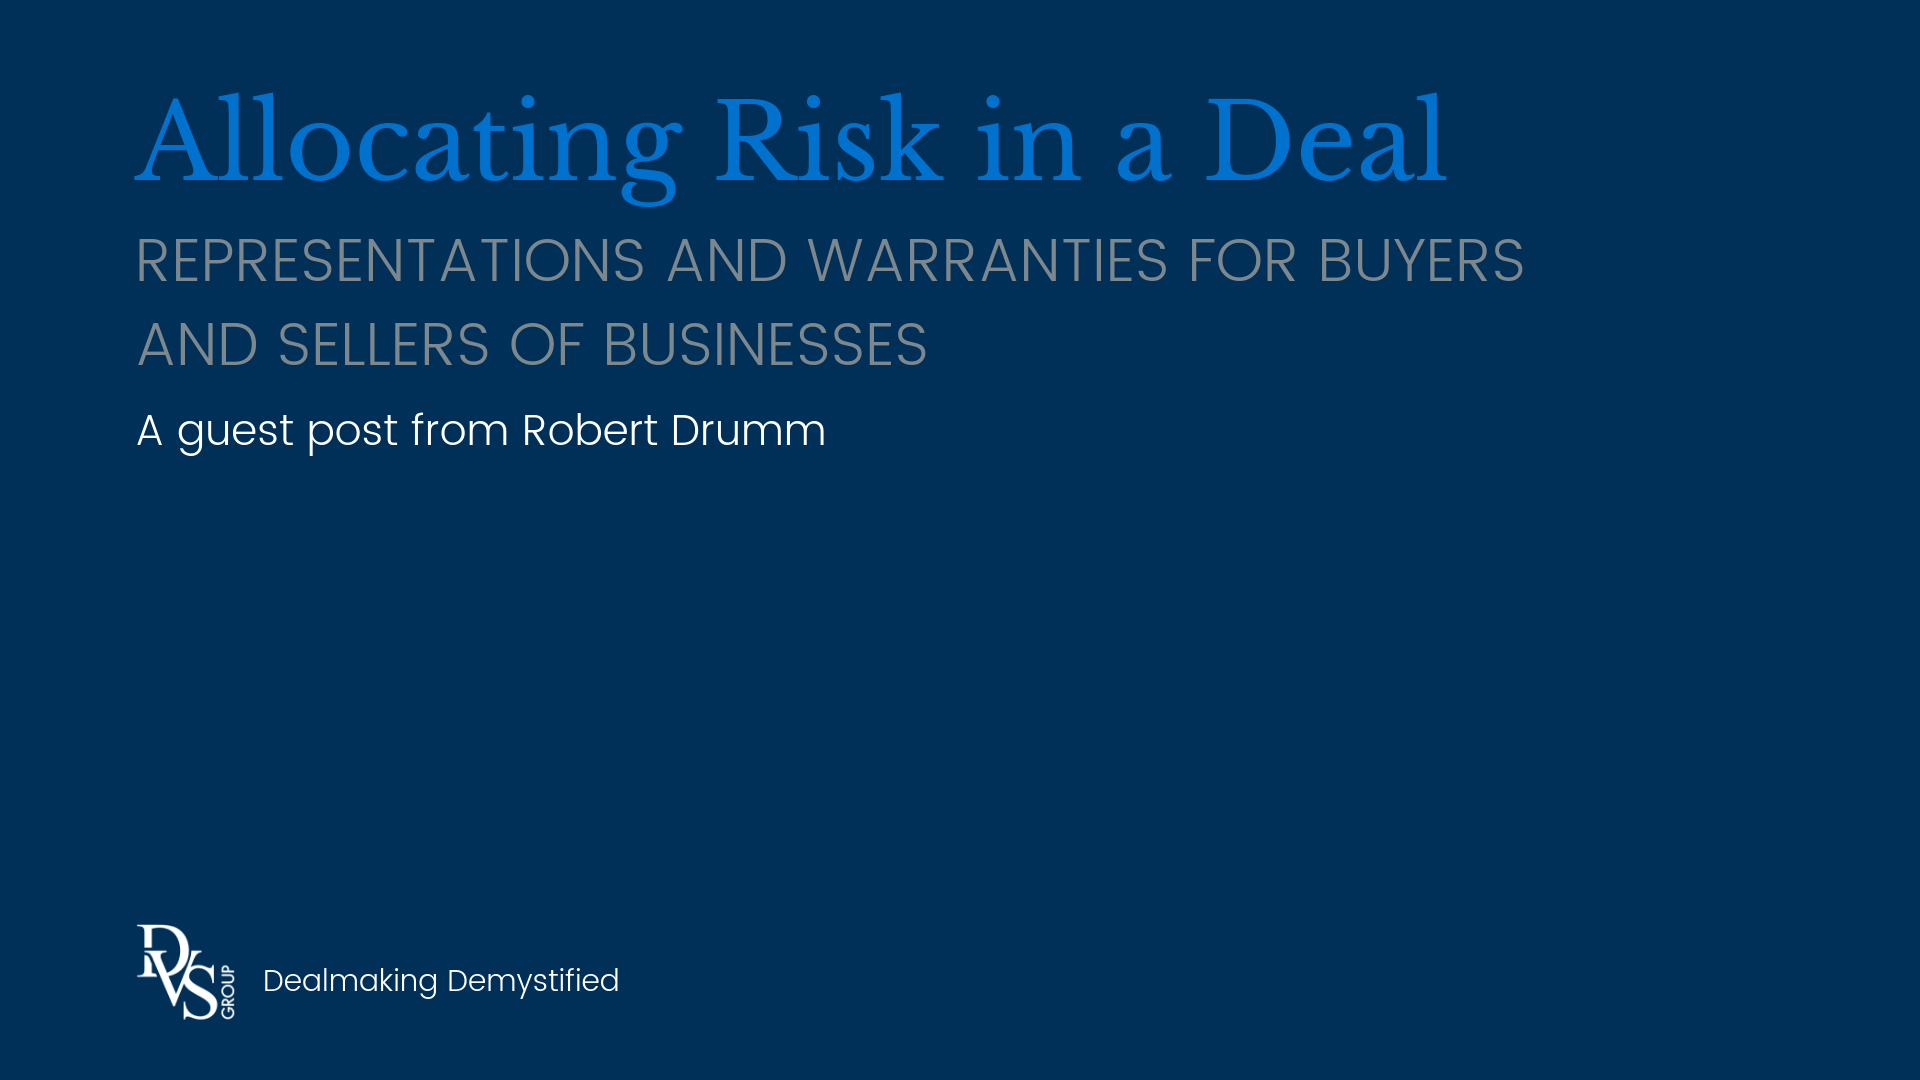 Allocating Risk in a Deal - Representations and Warranties